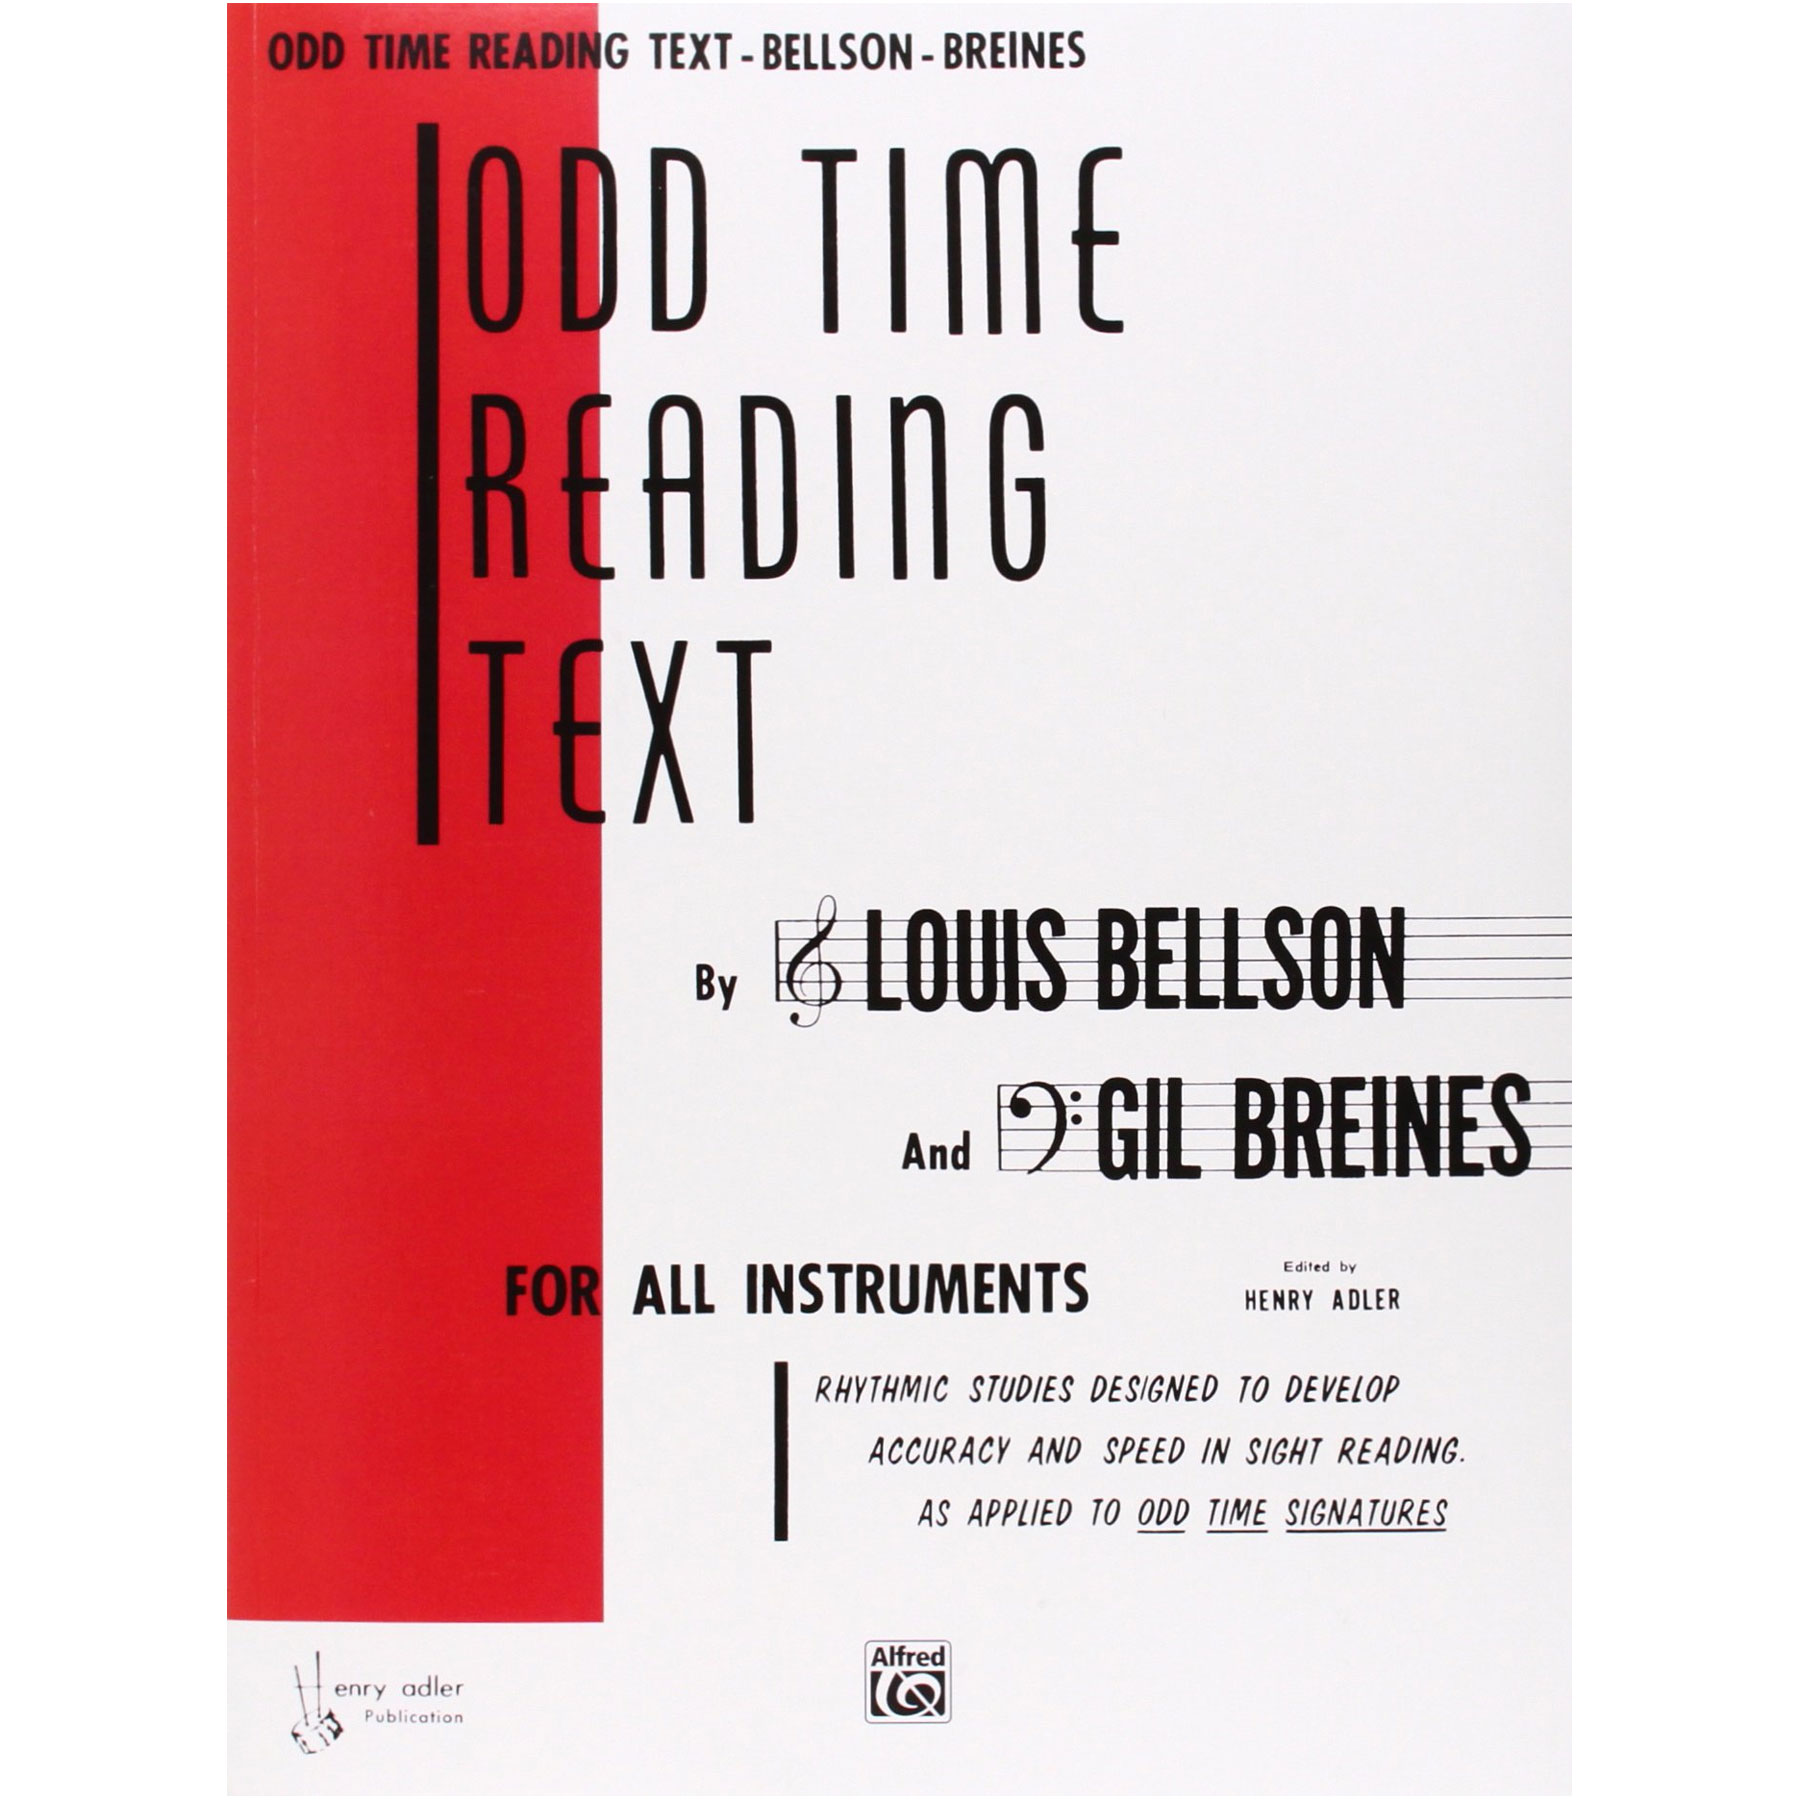 Odd Time Reading Text by Louis Bellson